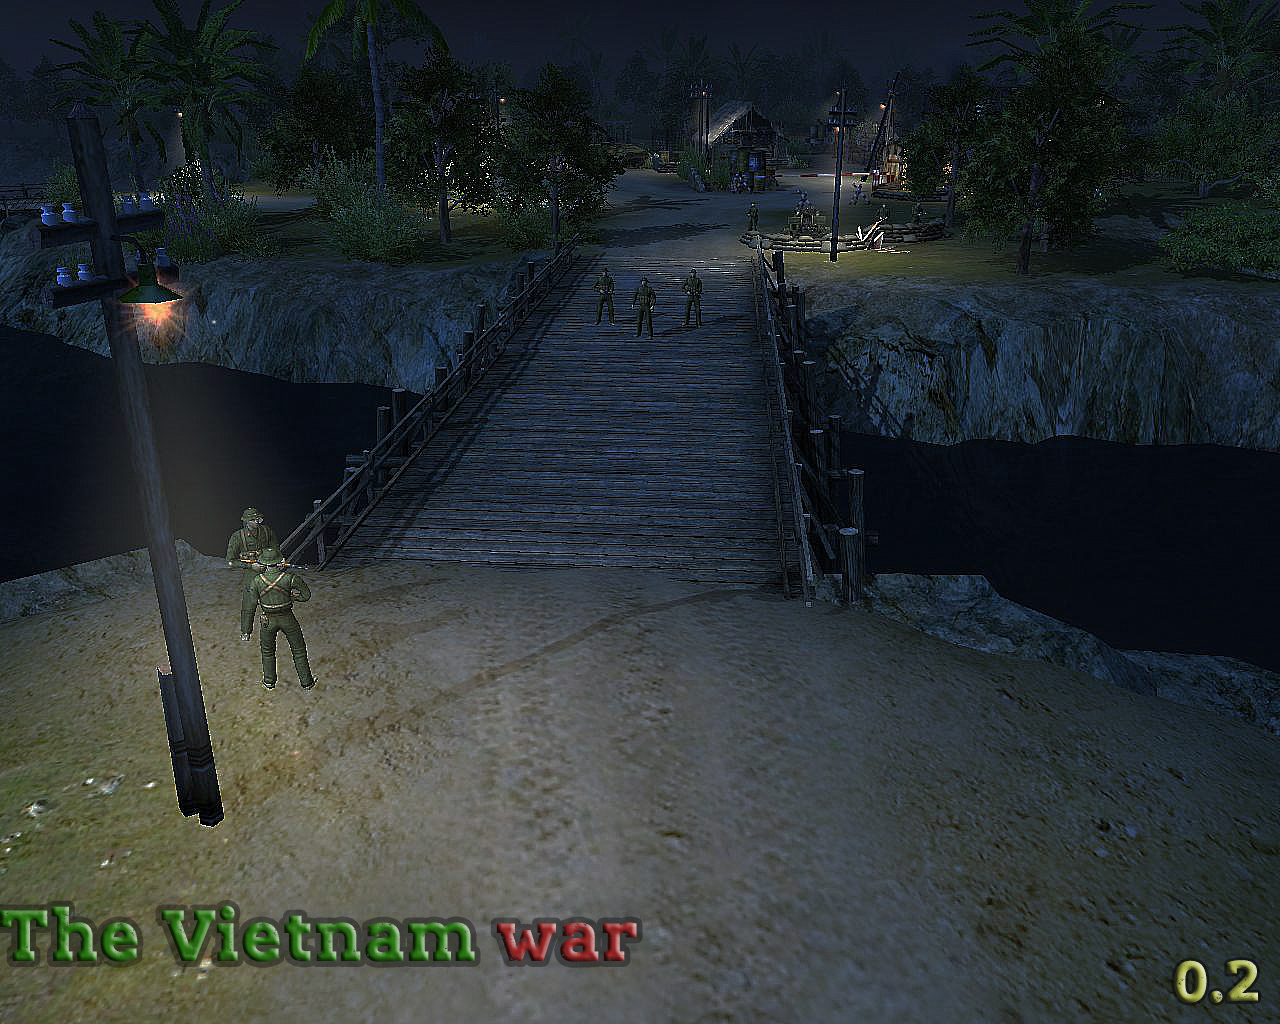 Скачать THE VIETNAM WAR  v0.2 — бесплатно